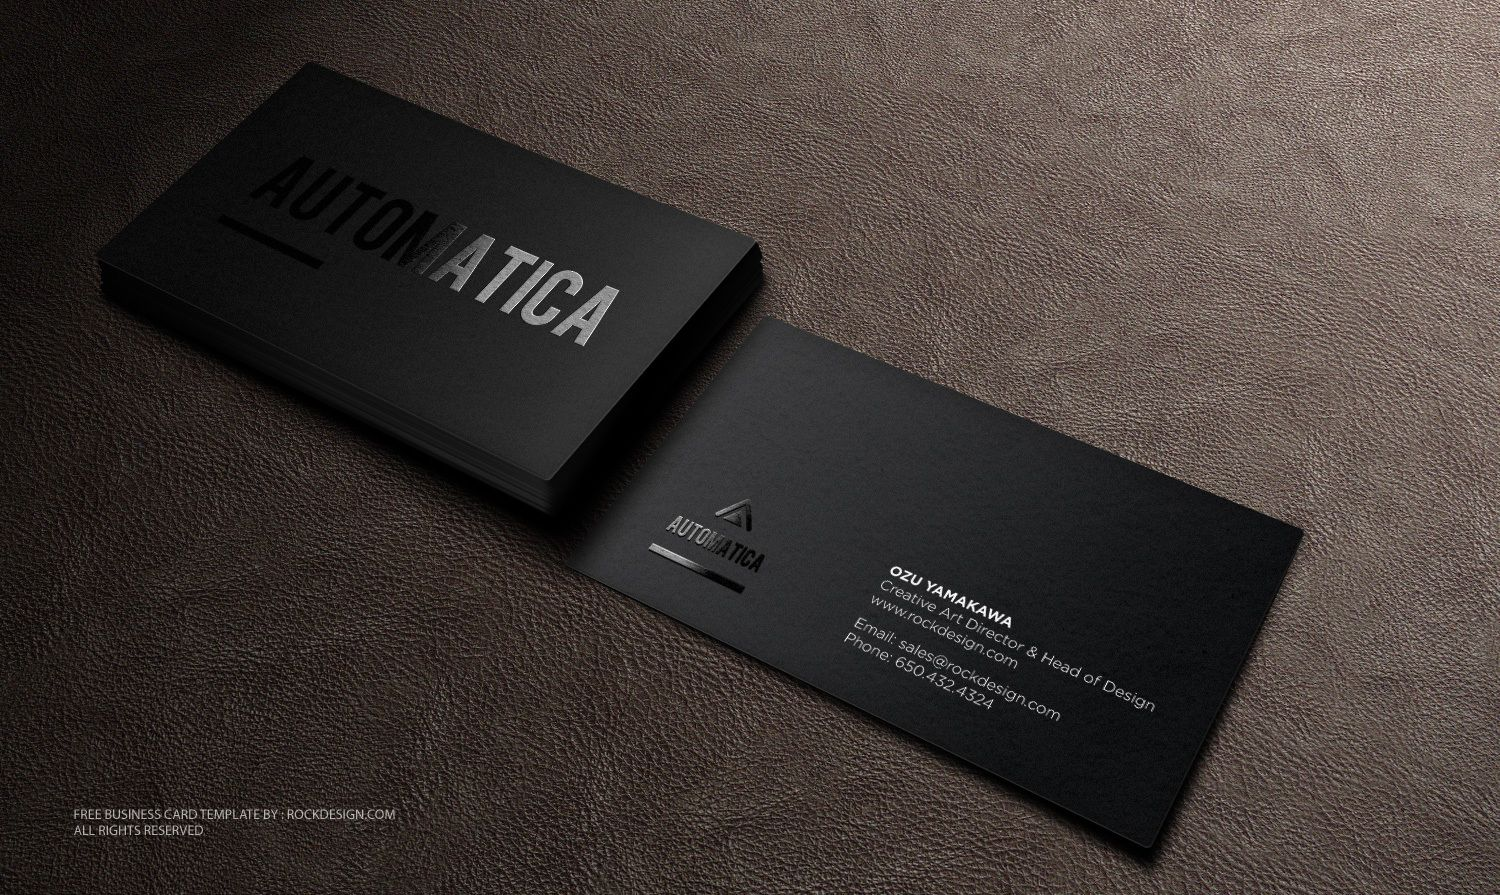 Black business card template download free design templates free business card templates for rockdesign print customers order a professional business card template online choose from our wide selection of business reheart Image collections